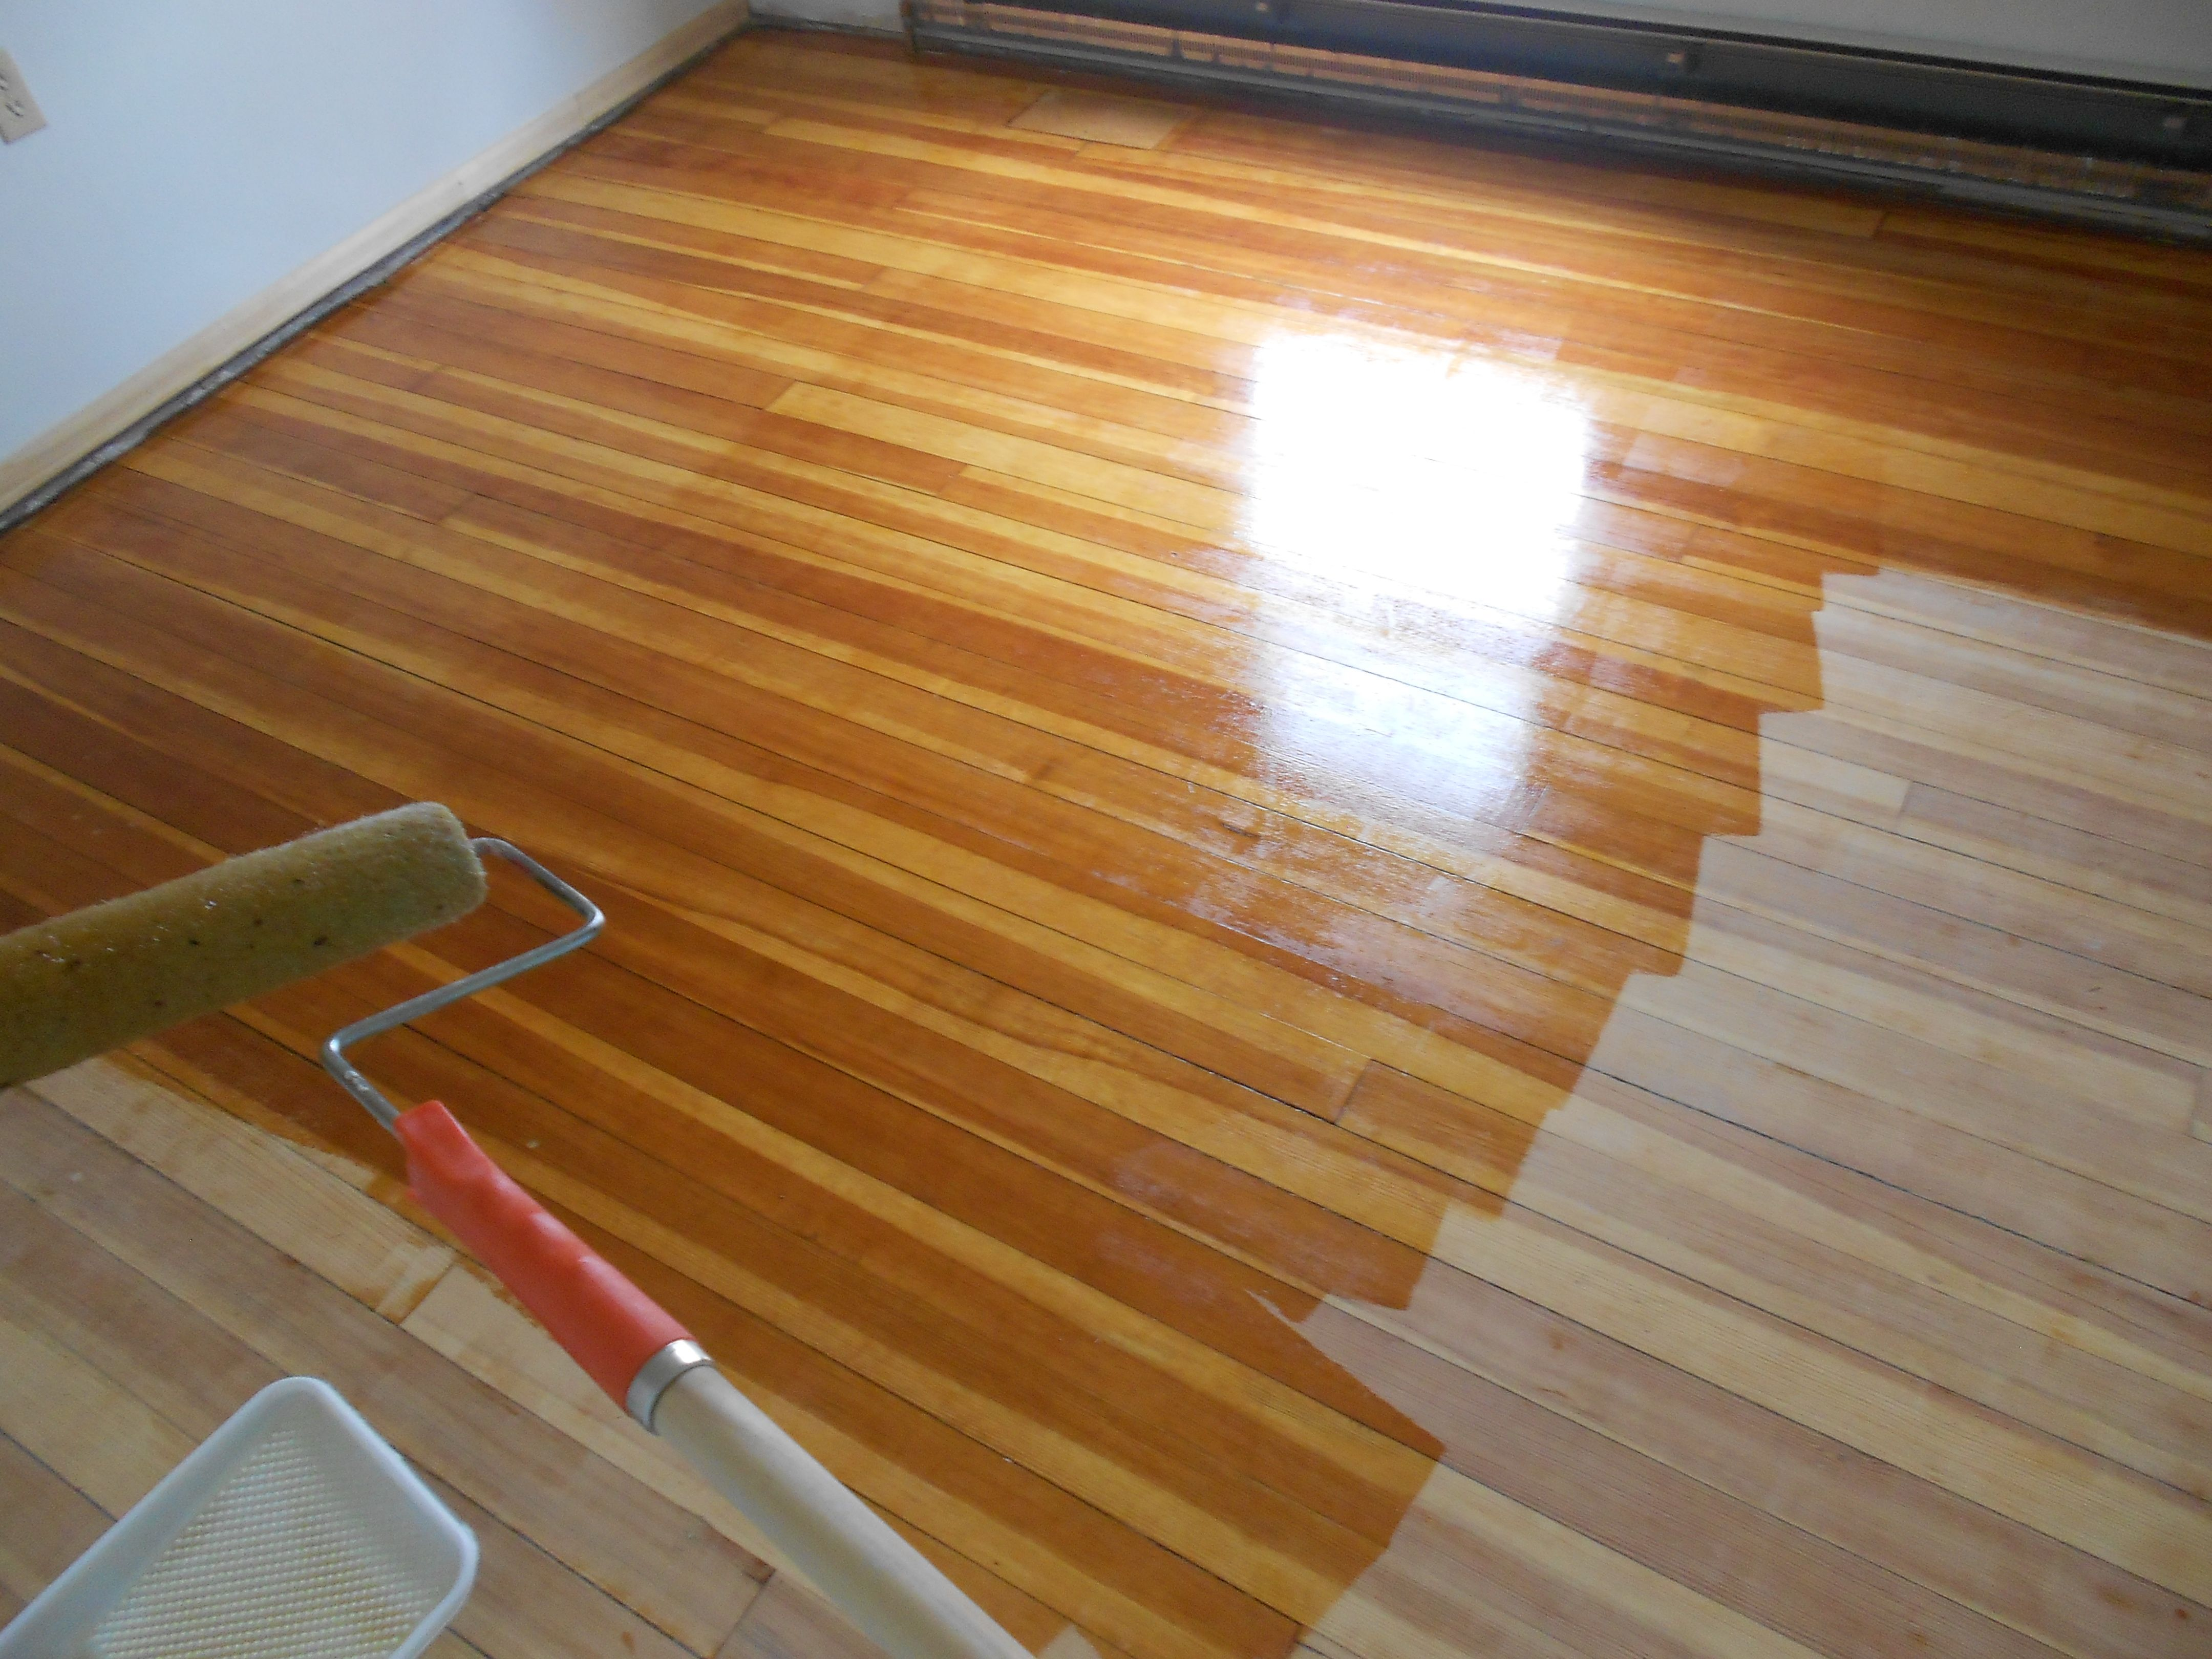 sealant for hardwood floors – gurus floor